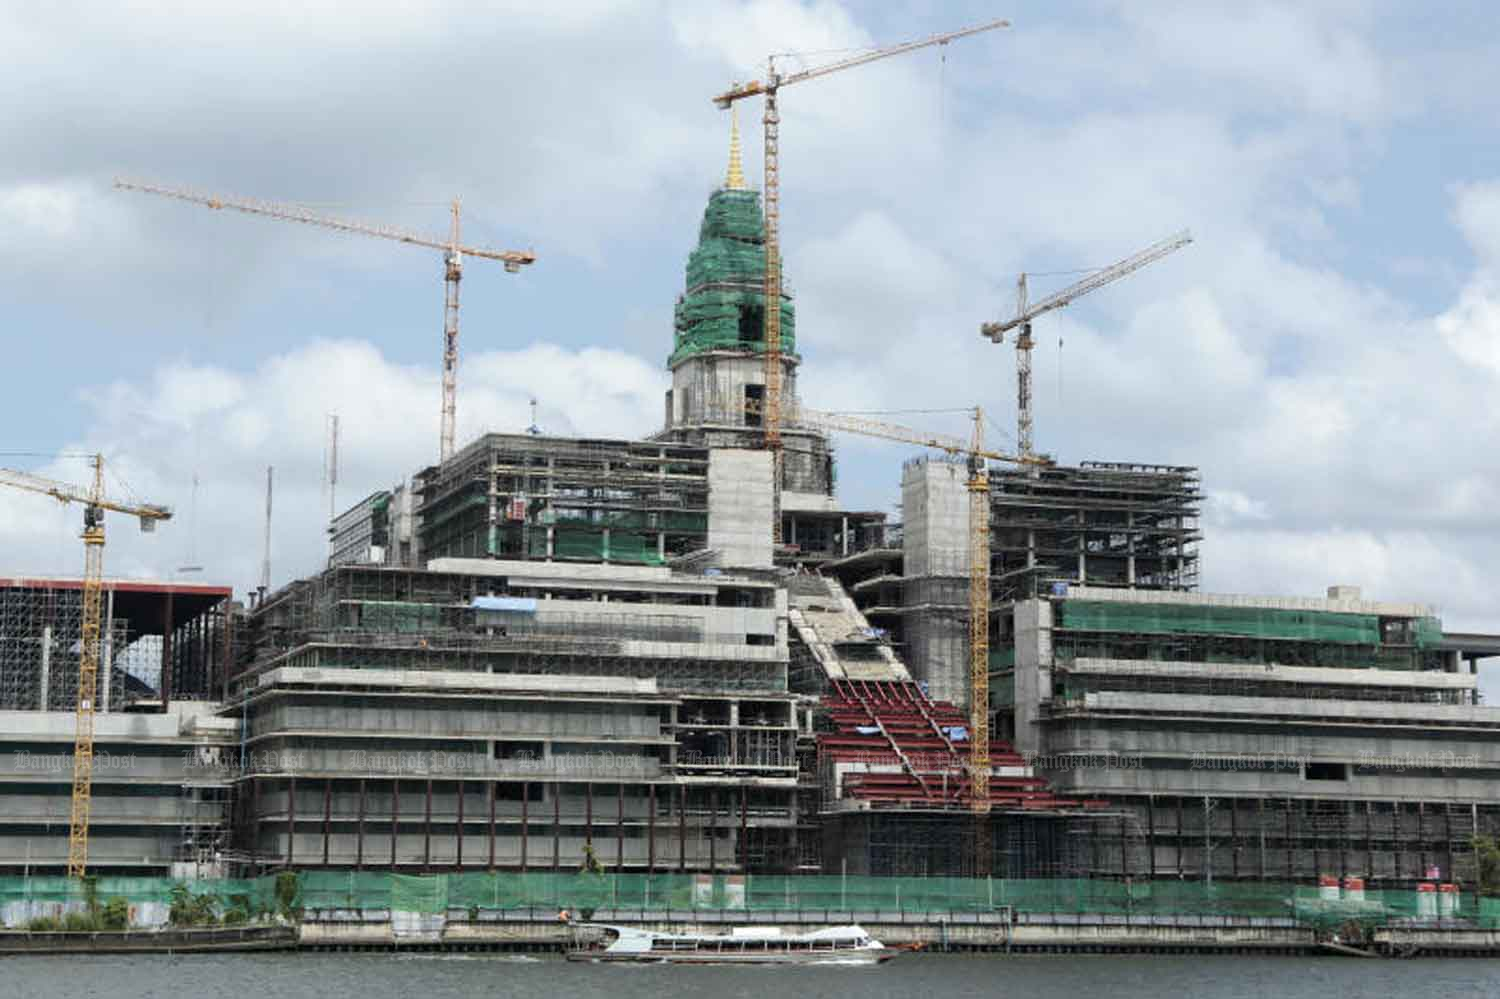 The new parliament complex under construction in June. (Bangkok Post file photo)